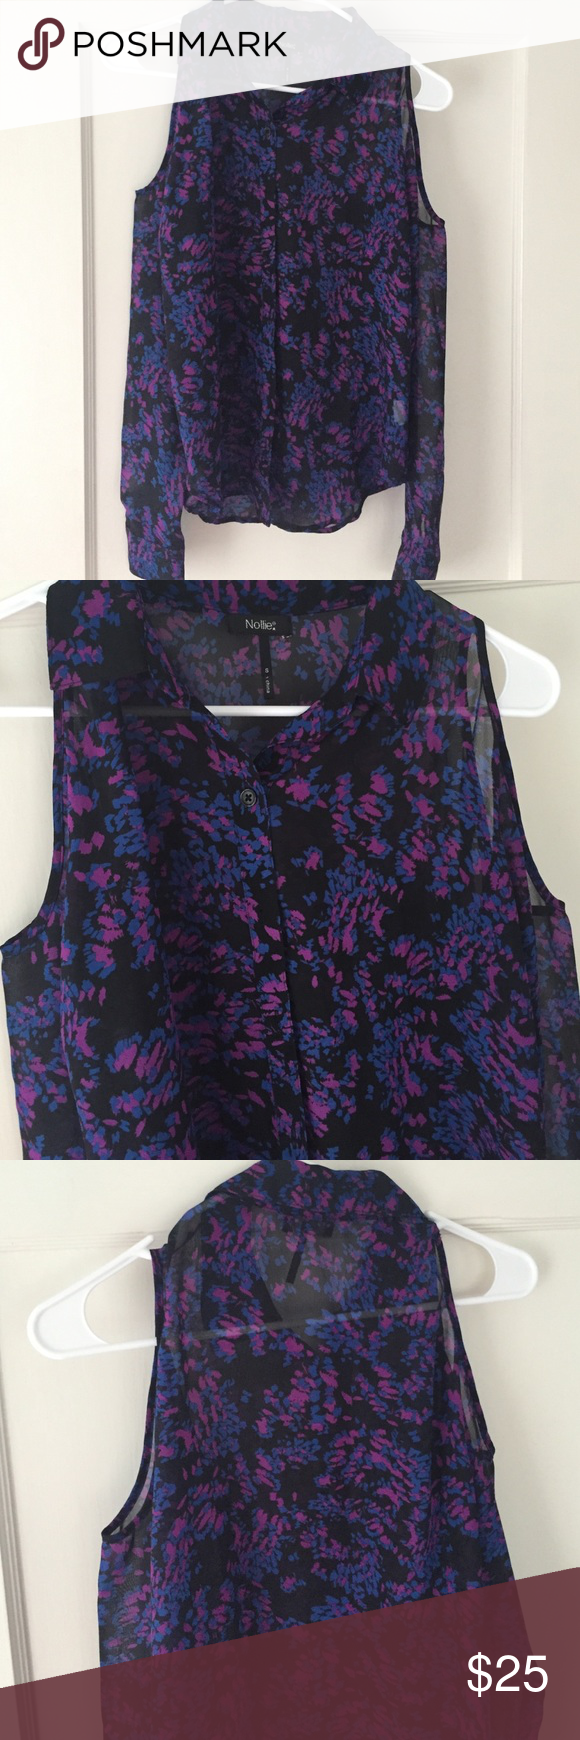 Cut-out shoulder button up shirt Like new. Sheer purple, black, and blue button up shirt with cut out shoulders. Long sleeved. Collared. Loose fitting, very comfortable! Nollie Tops Button Down Shirts